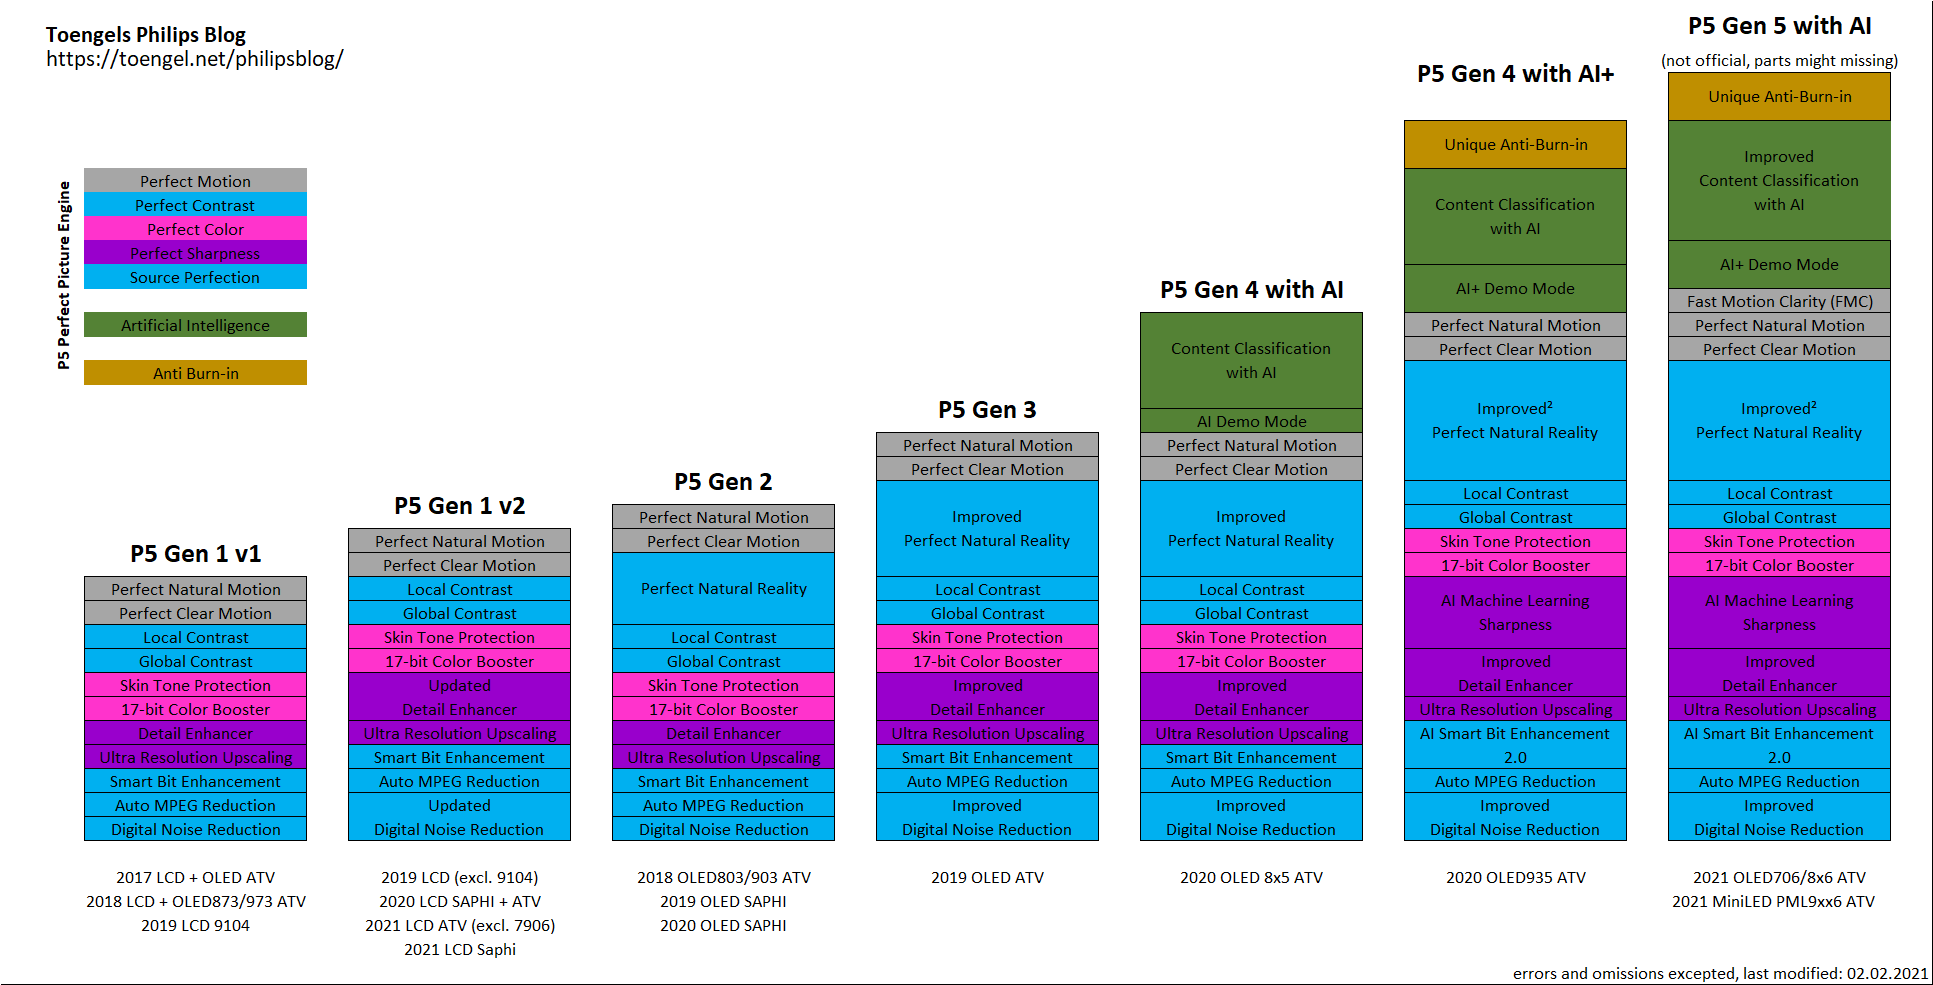 Philips P5 Picture Processing Engine: Comparisson of all Generations (up to Gen 5 AI)